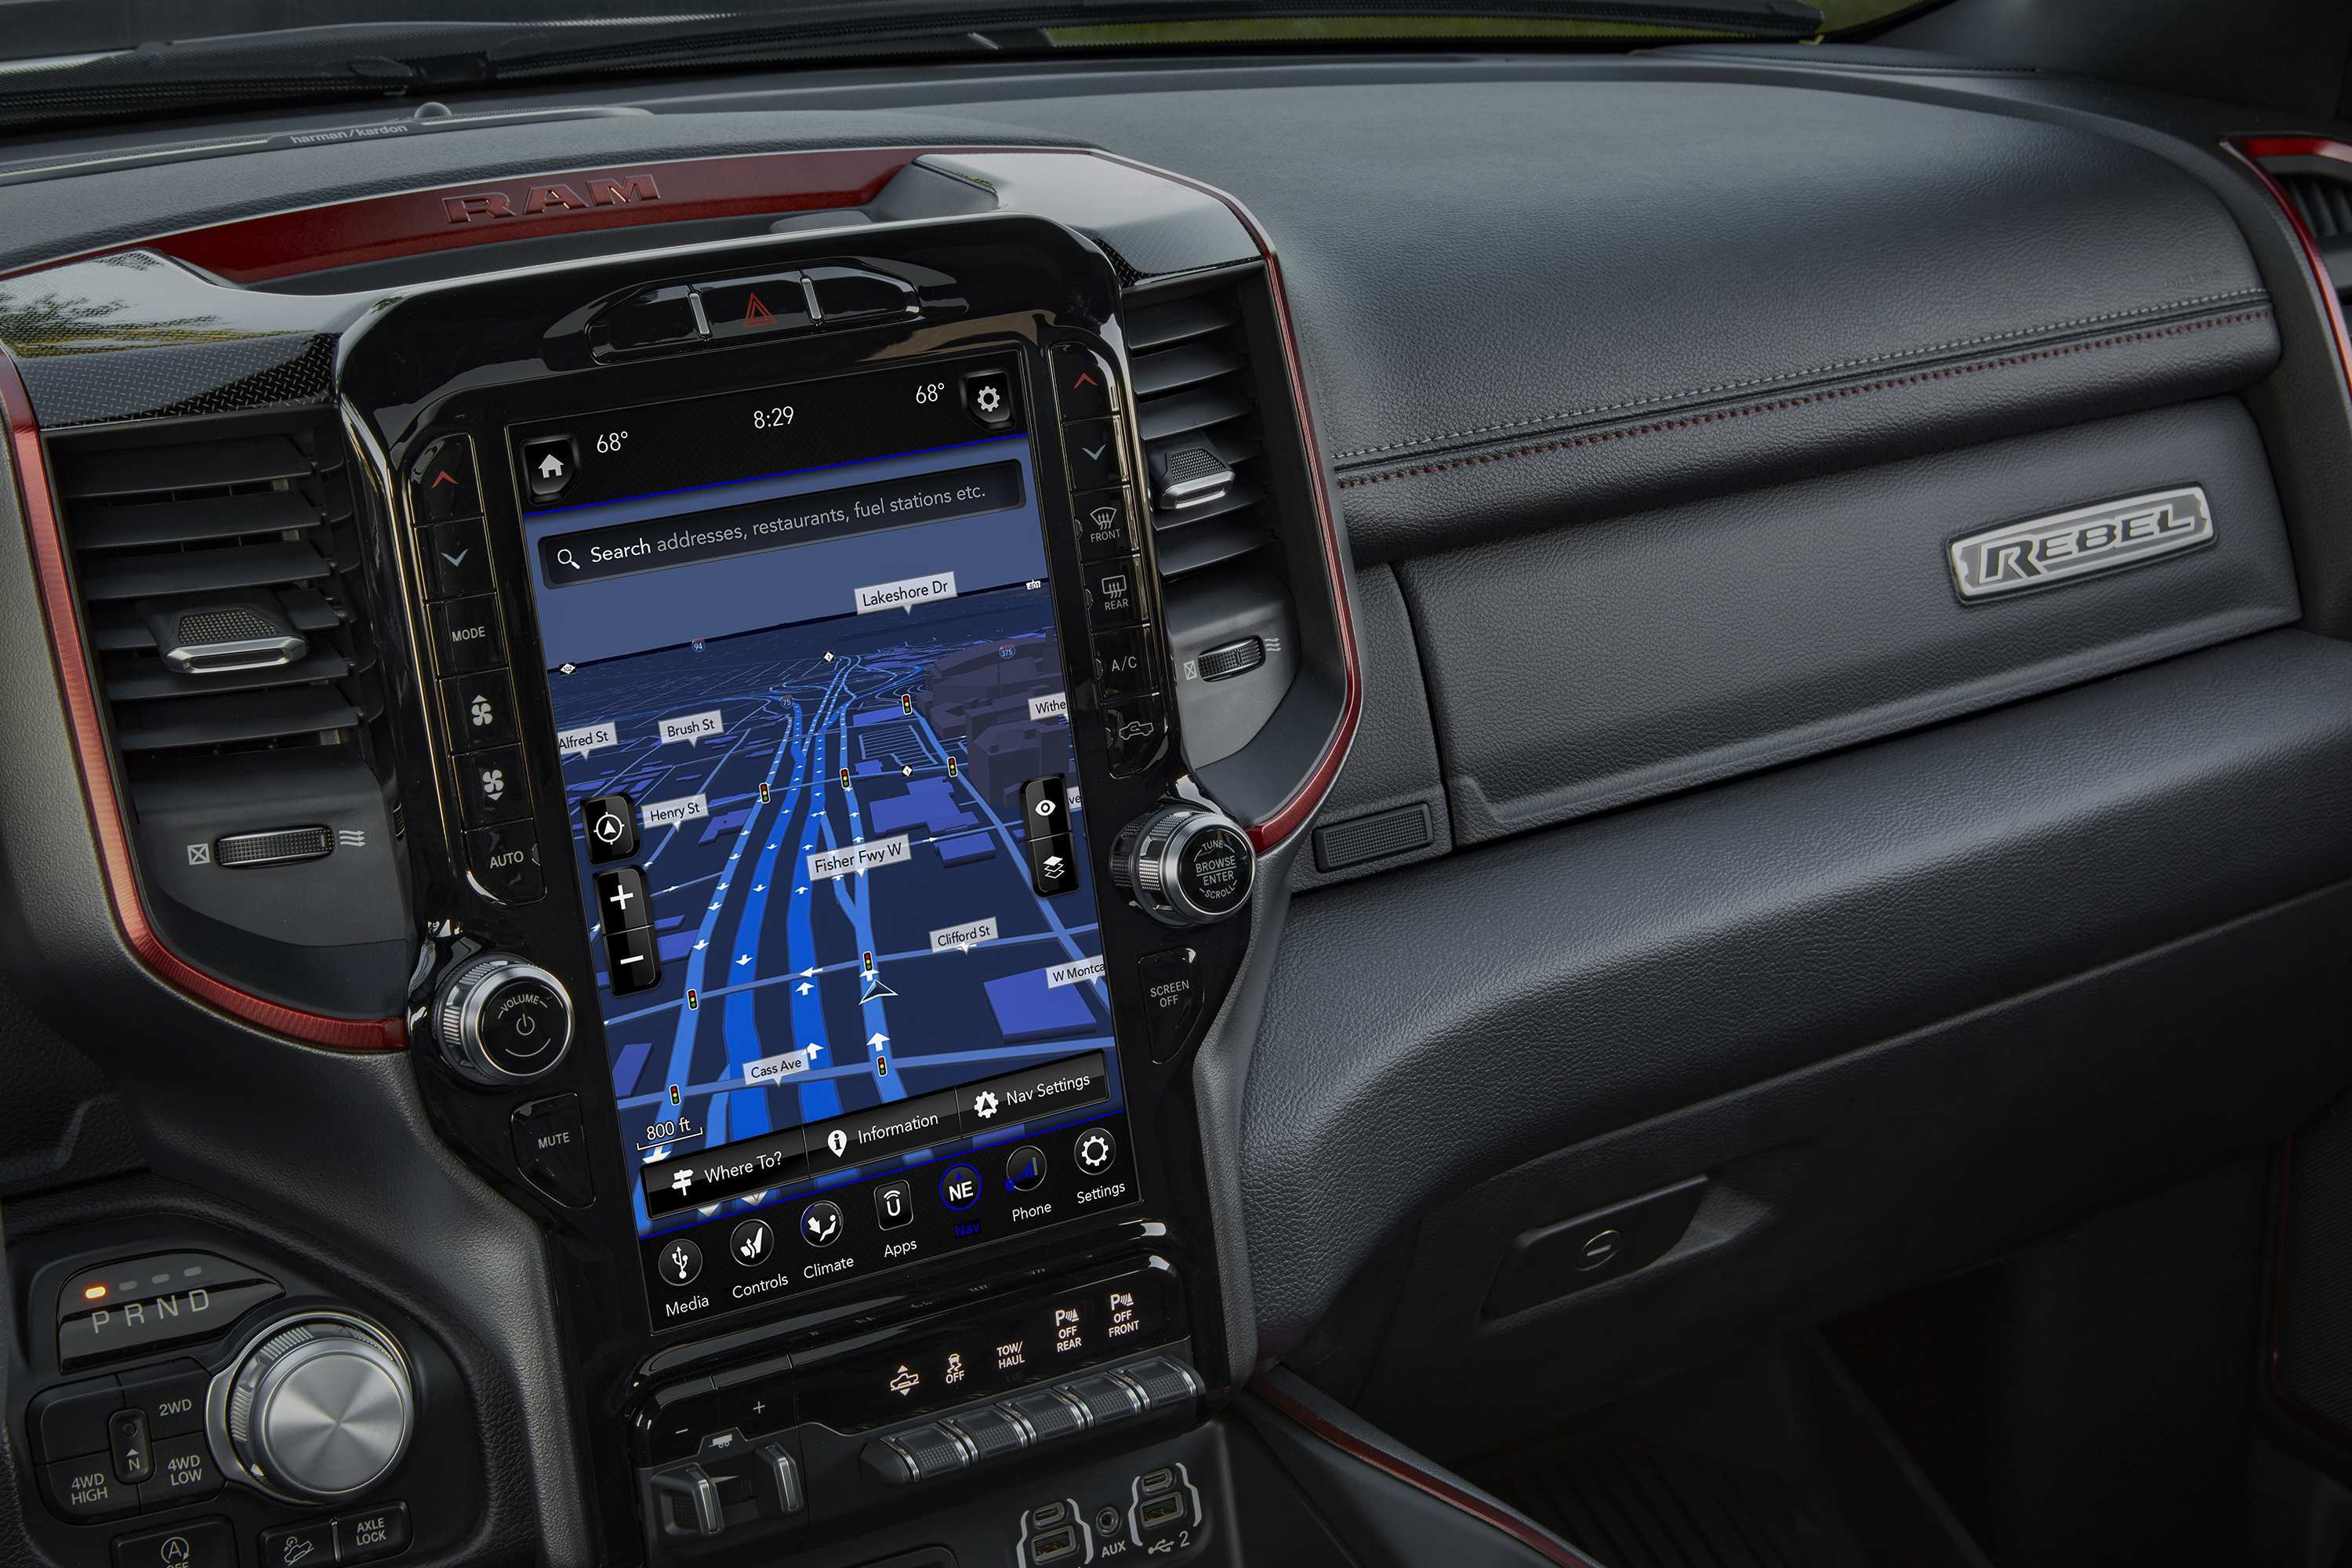 35 Best 2019 Dodge Touch Screen Images